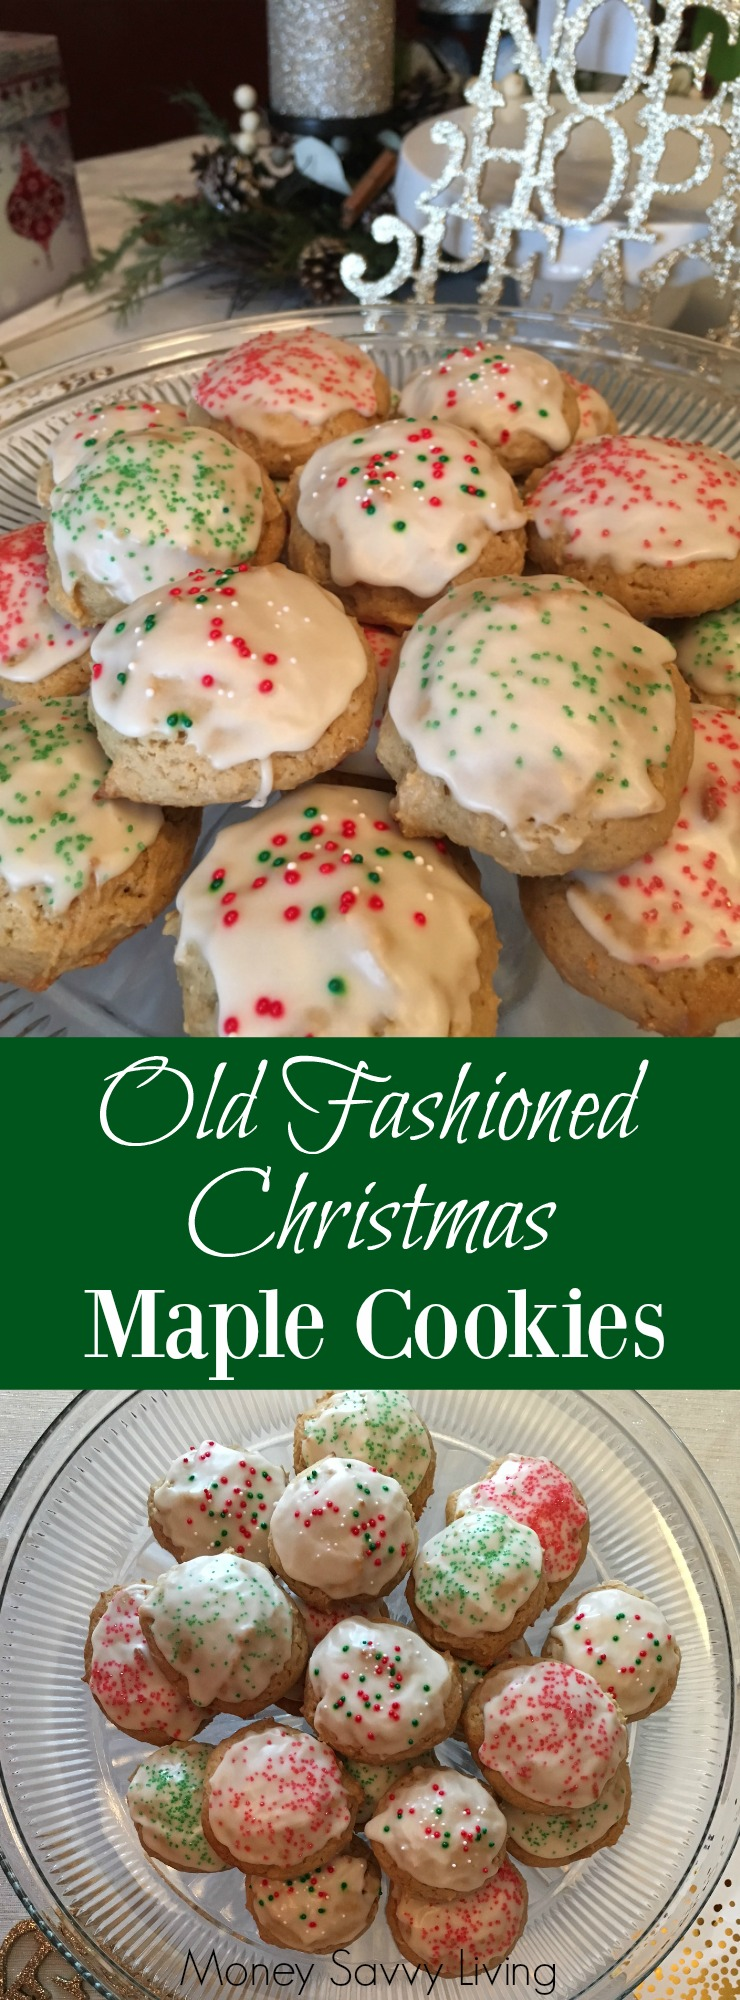 Old Fashioned Christmas Maple Cookies | Money Savvy Living